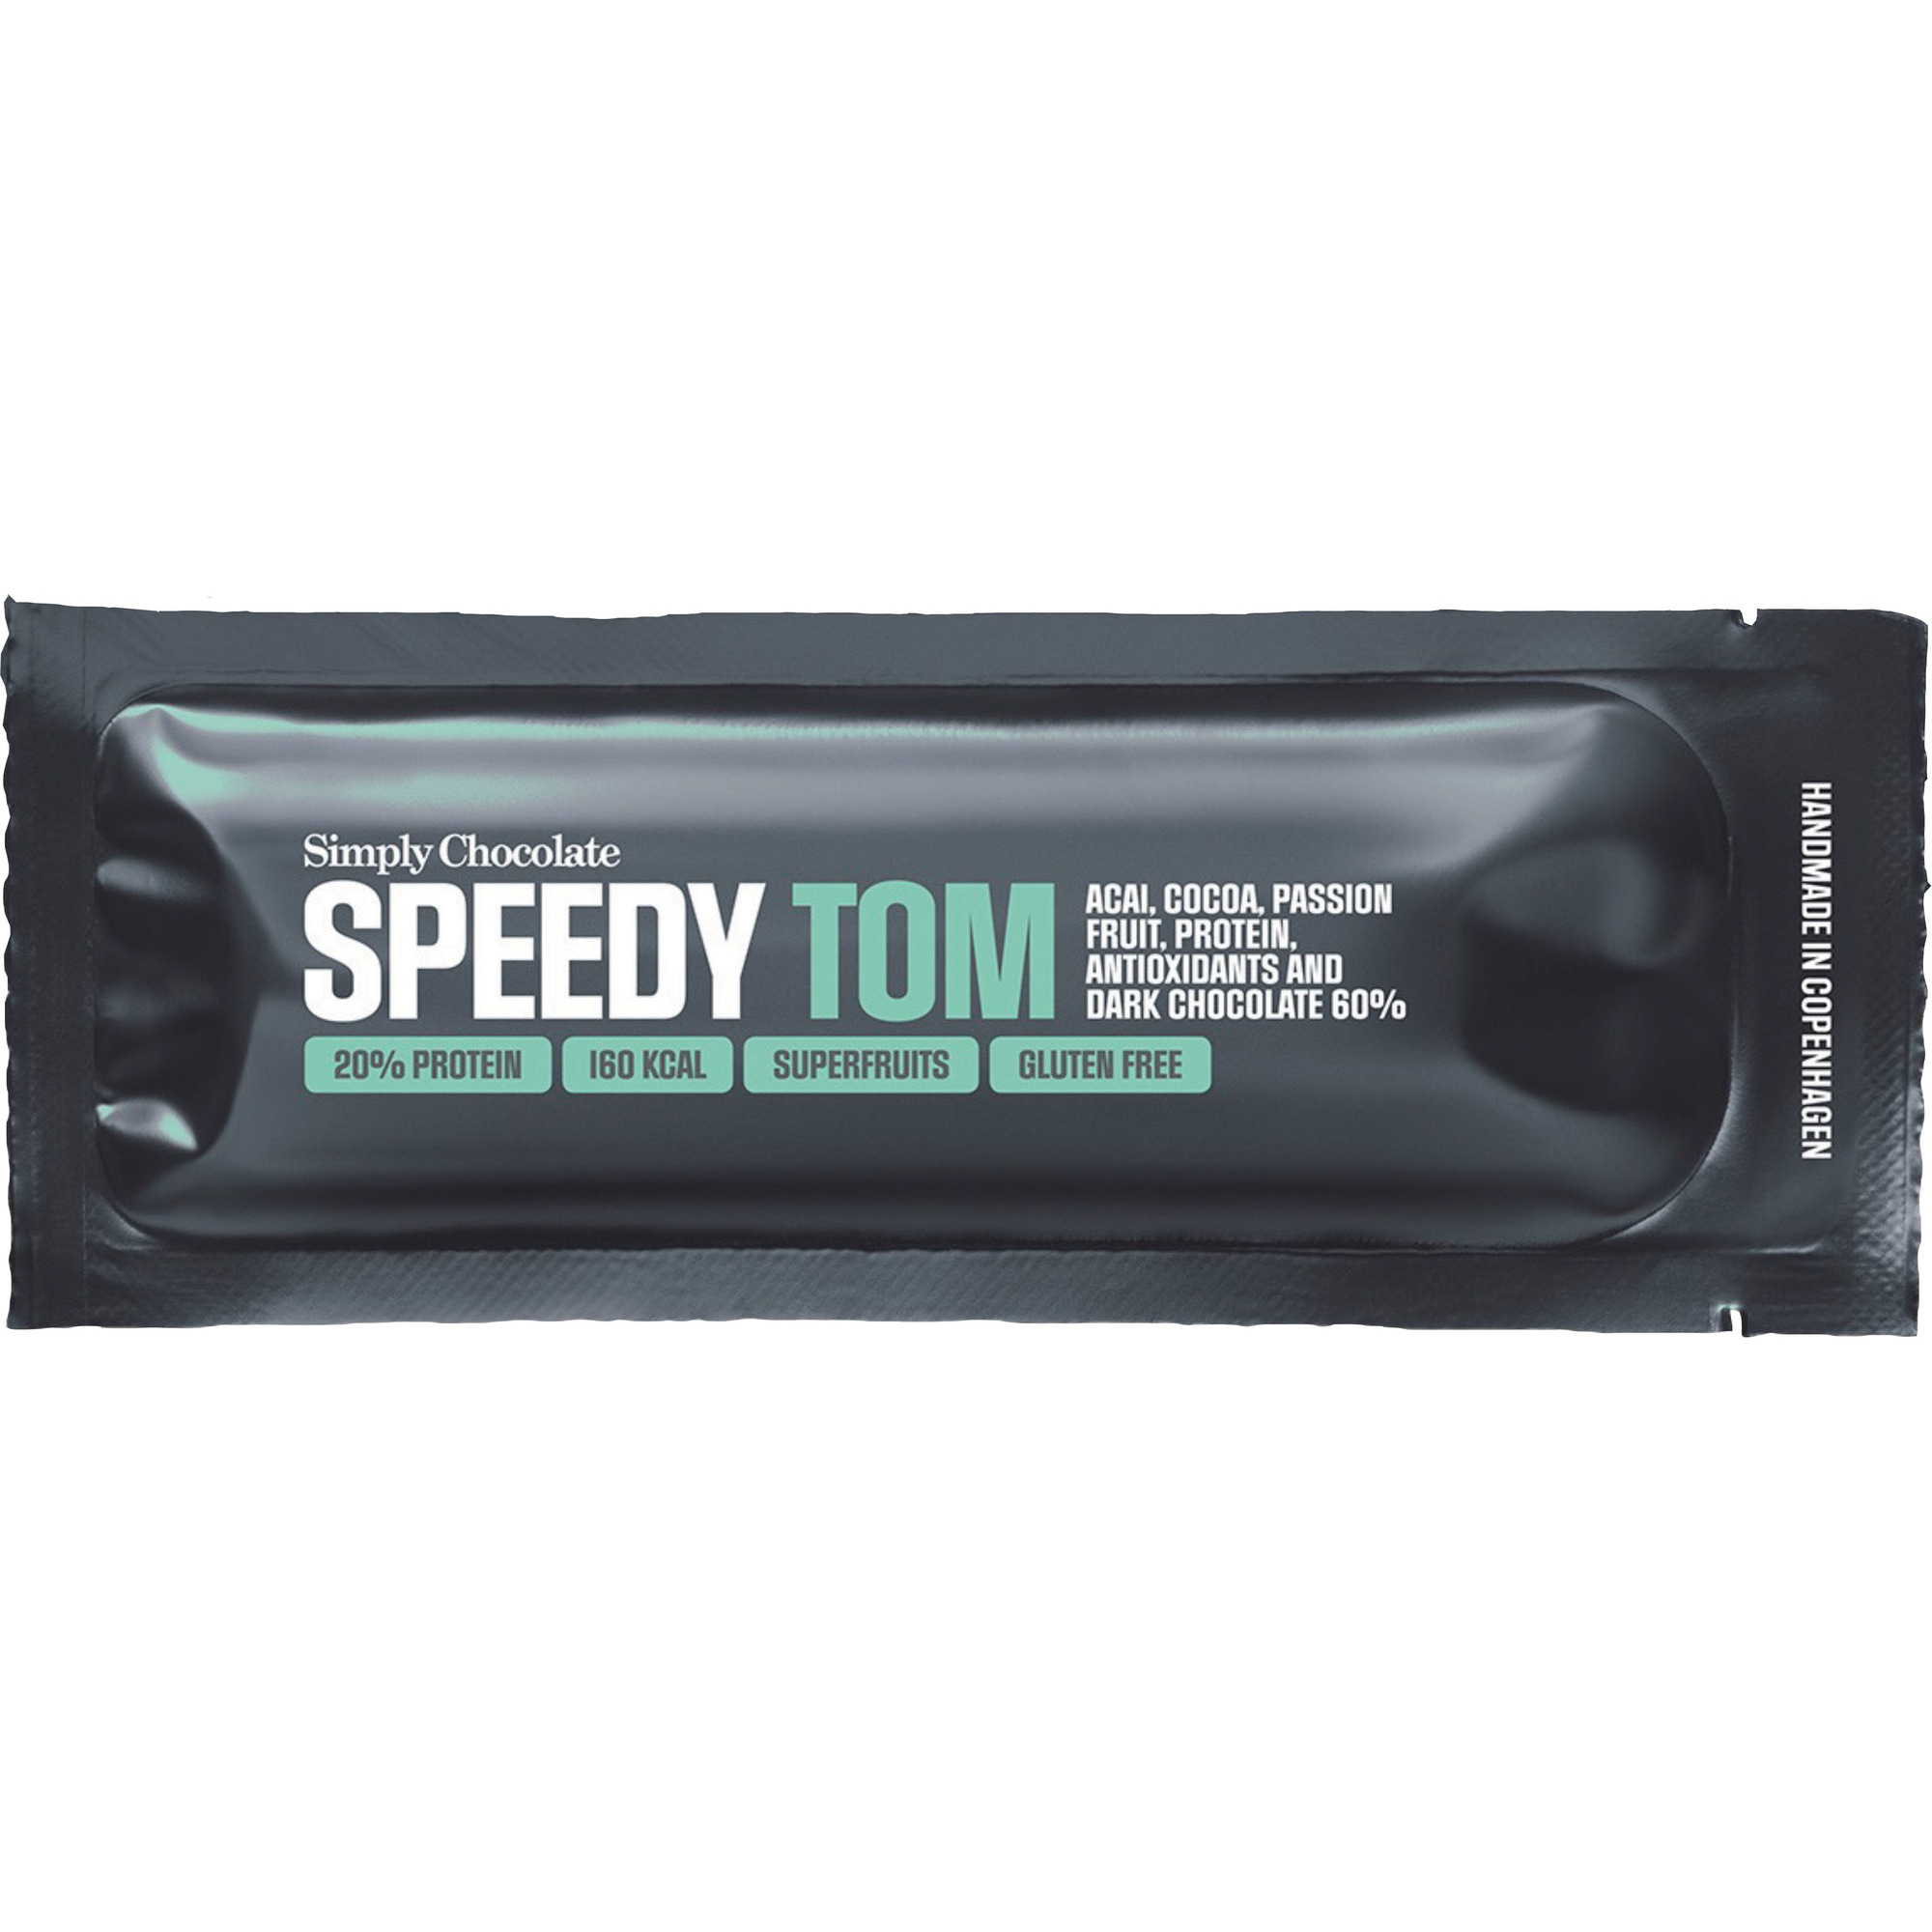 Simply Chocolate Speedy Tom